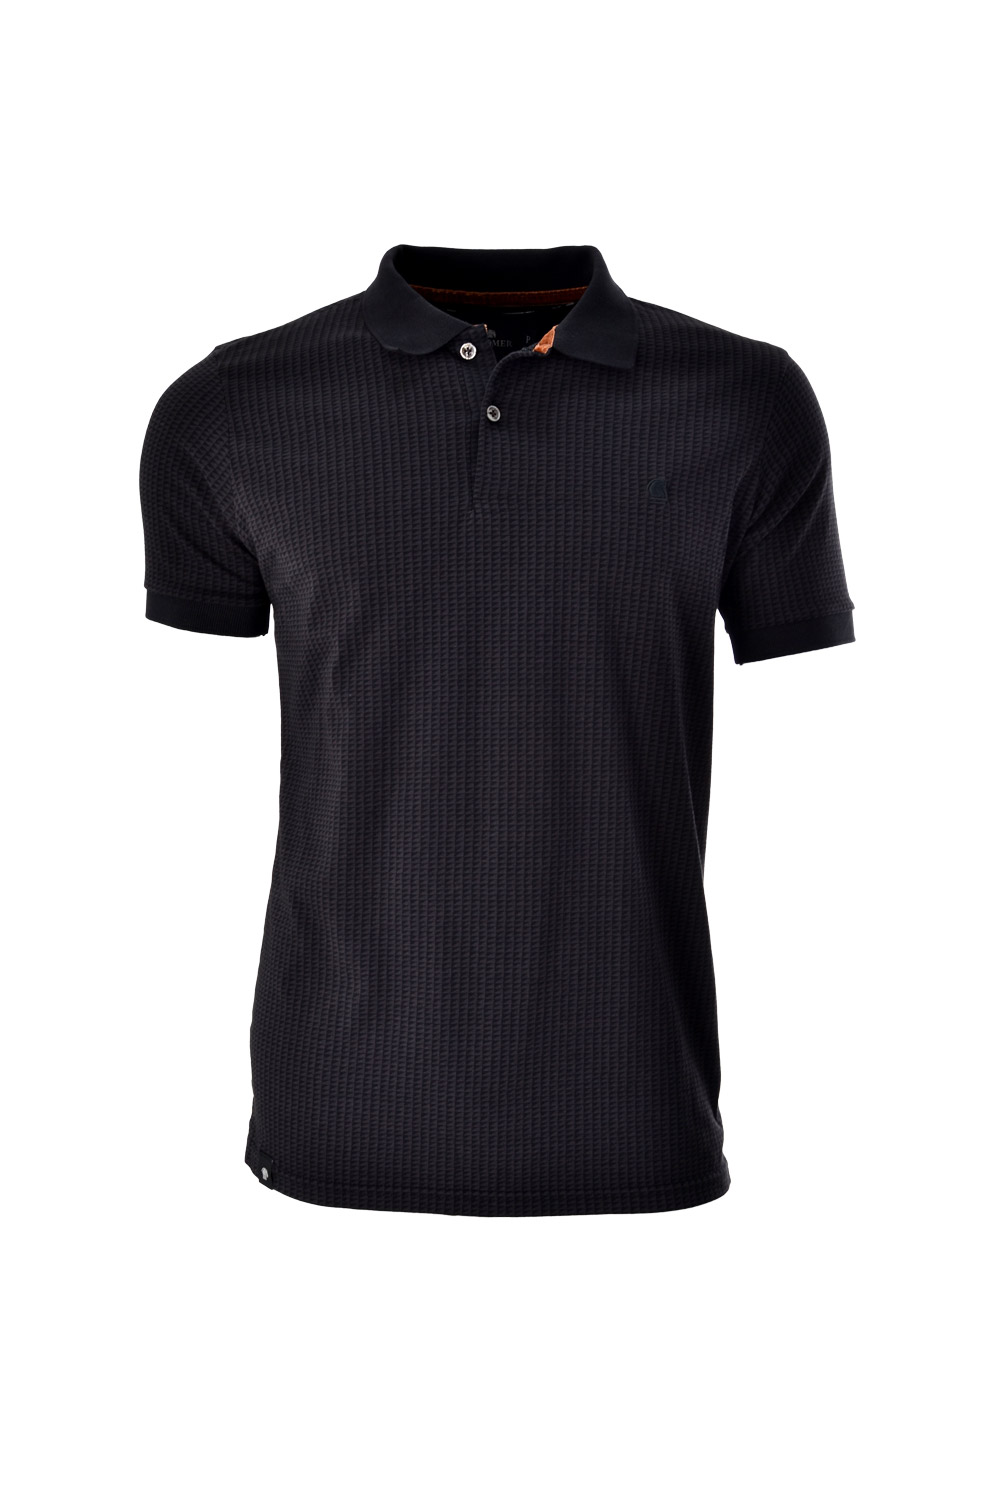 POLO MC BLUES SLIM ALGODAO FIO TINTO ESTAMPA PRETO